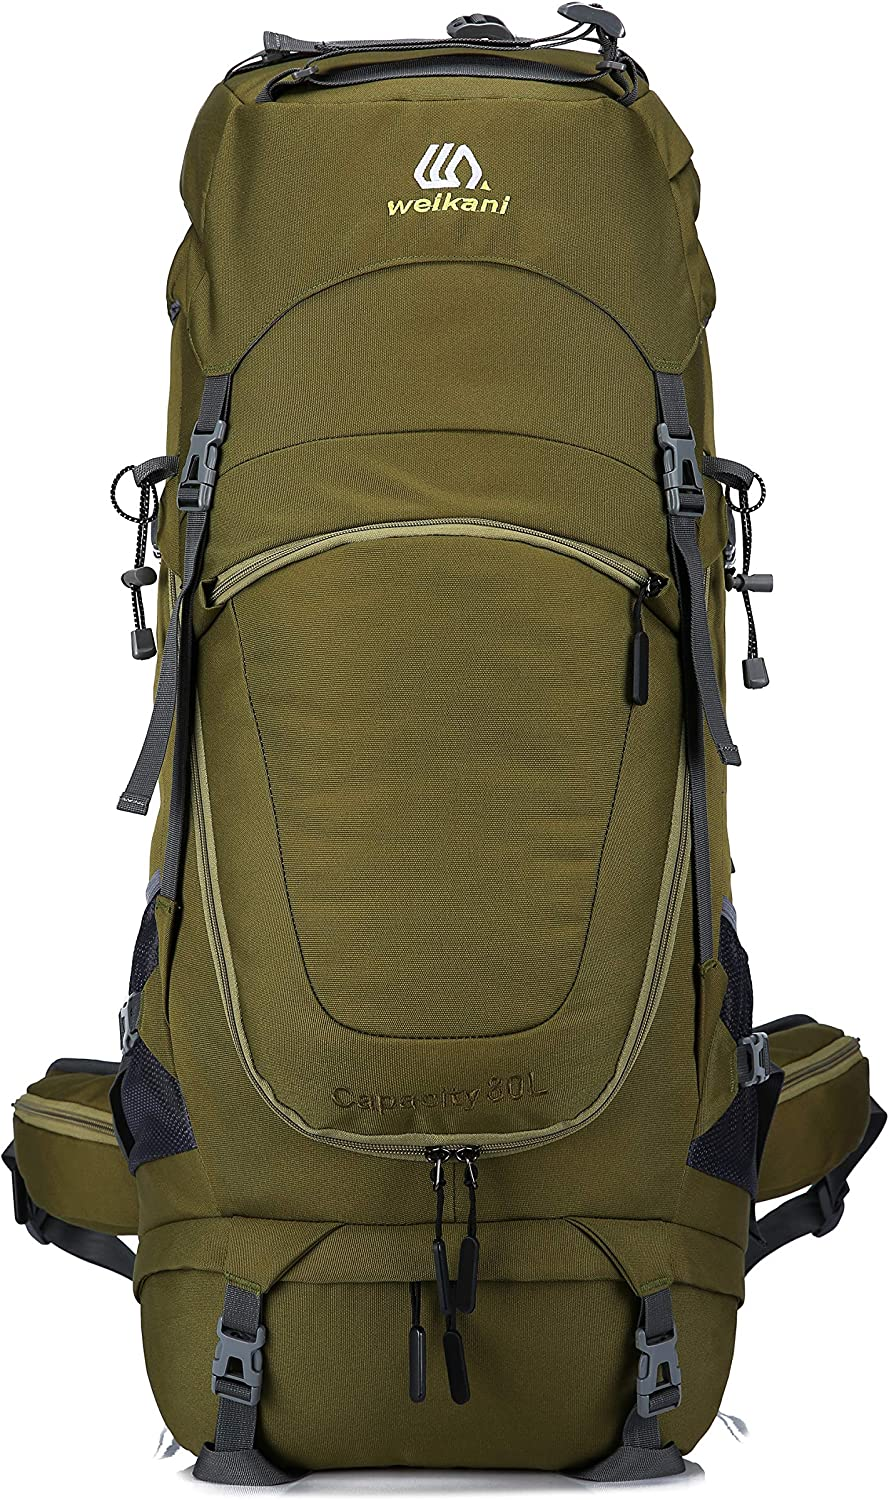 Weikani Internal Frame Hiking Backpack 60L/80L with Rainfly Suitable for Travel Hunting Camping Mountain